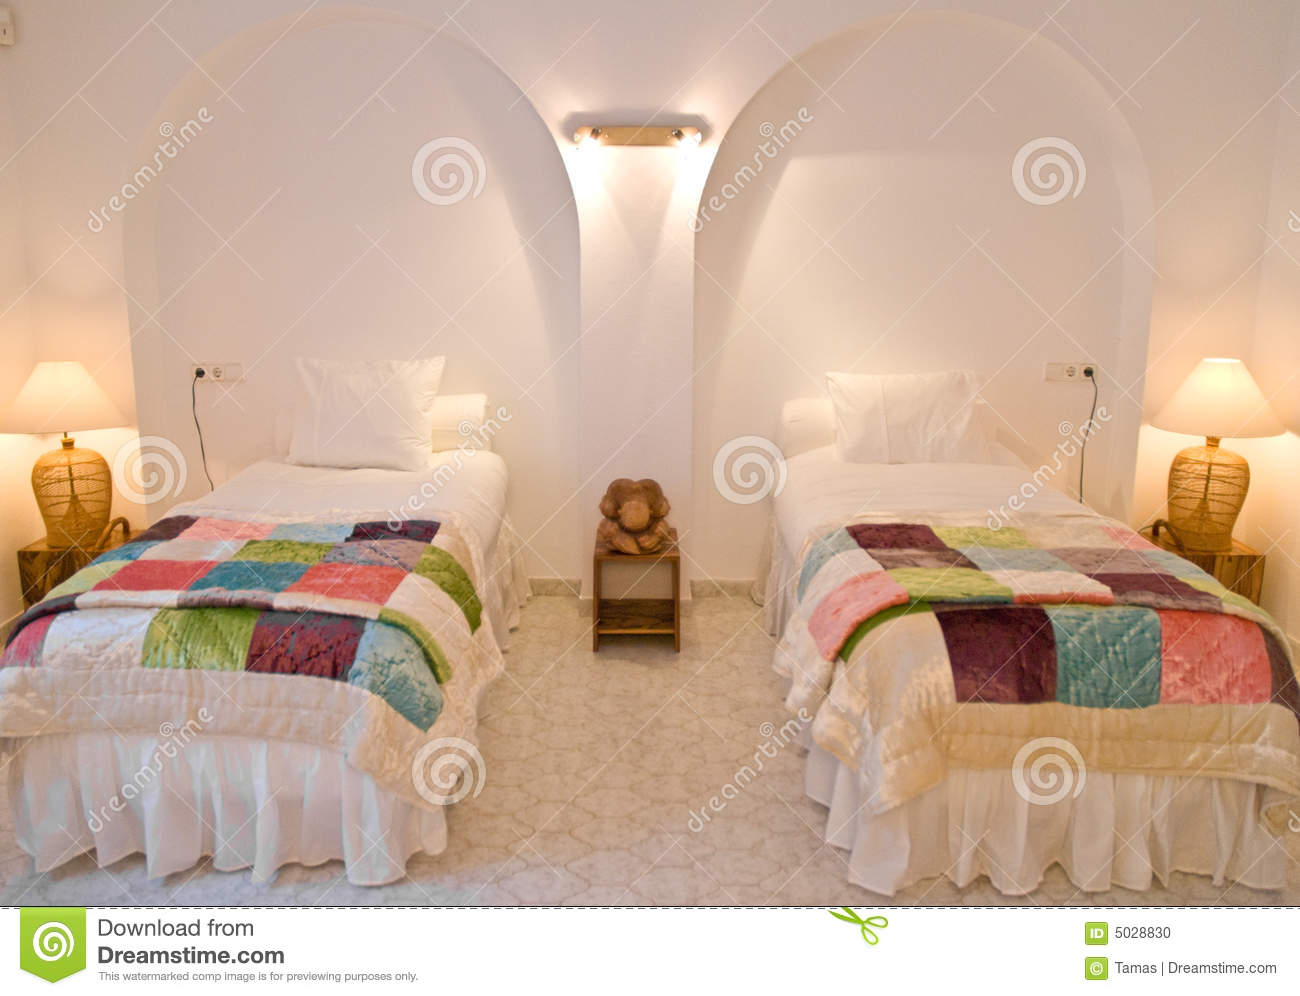 Twin Bedroom Interior Stock Photo - Image: 5028830